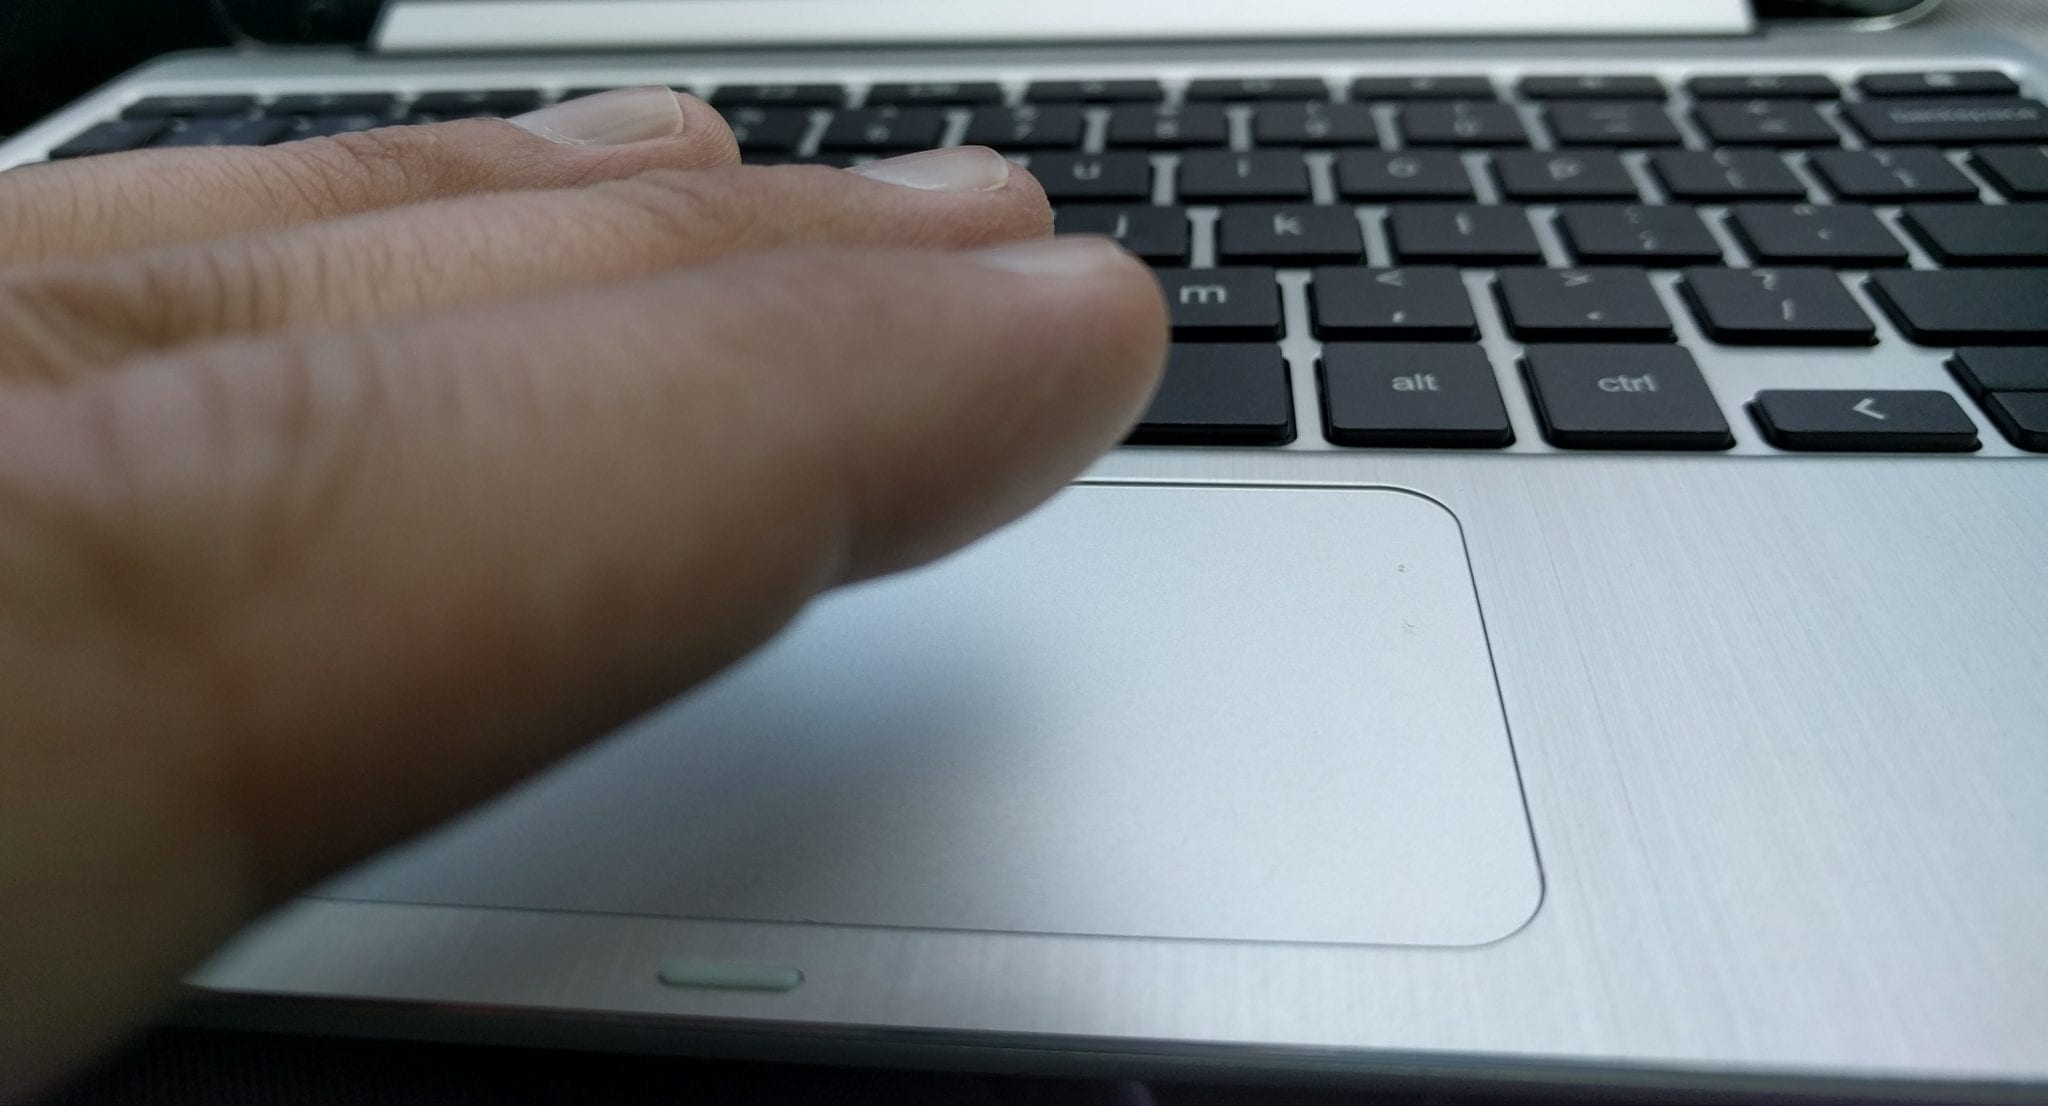 Hover-Enabled Trackpads Coming to Chromebooks